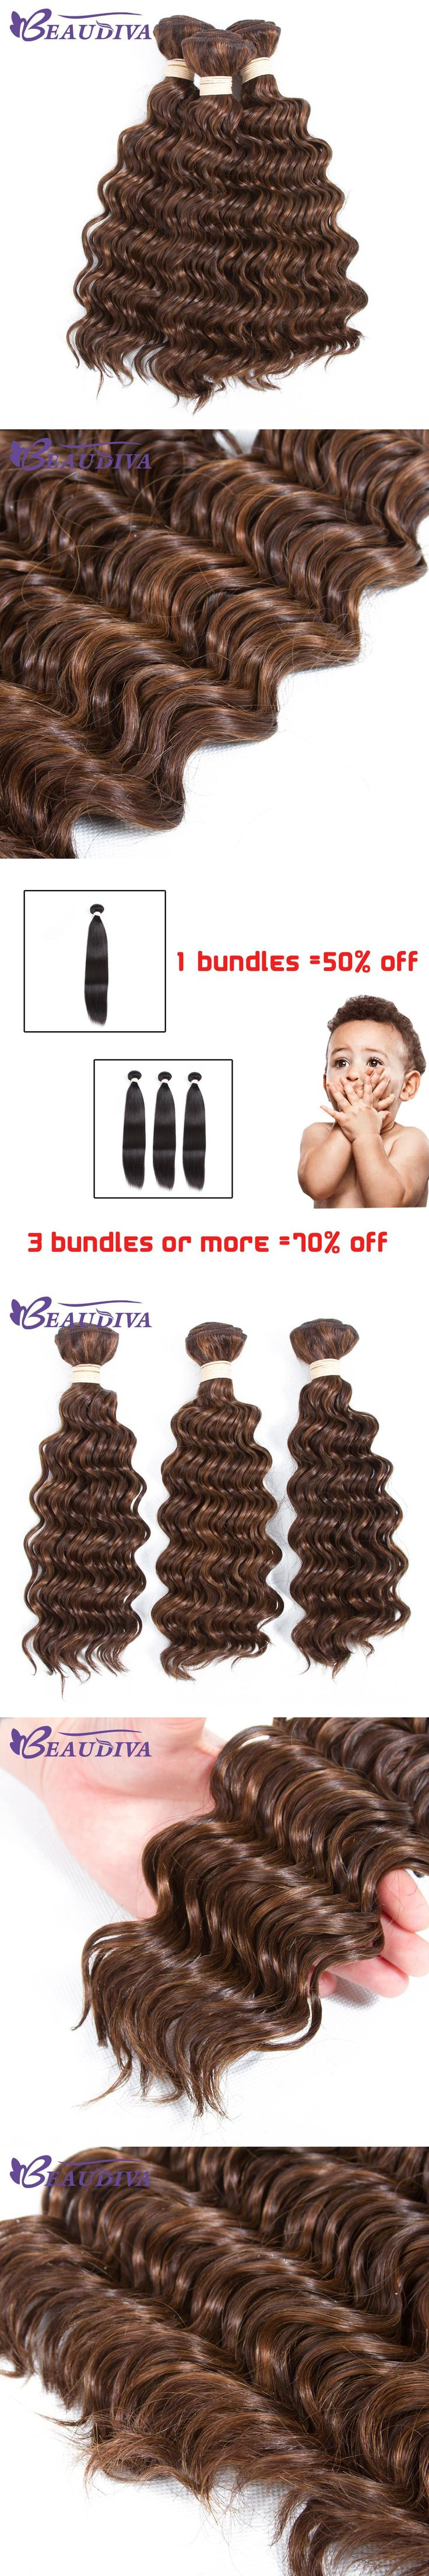 Beaudiva Hair 3 Pieces Ombre Brazilian Deep Wave Hair Bundles Deep Wave Brazilian Hair 8-26inch Human Hair Bundles